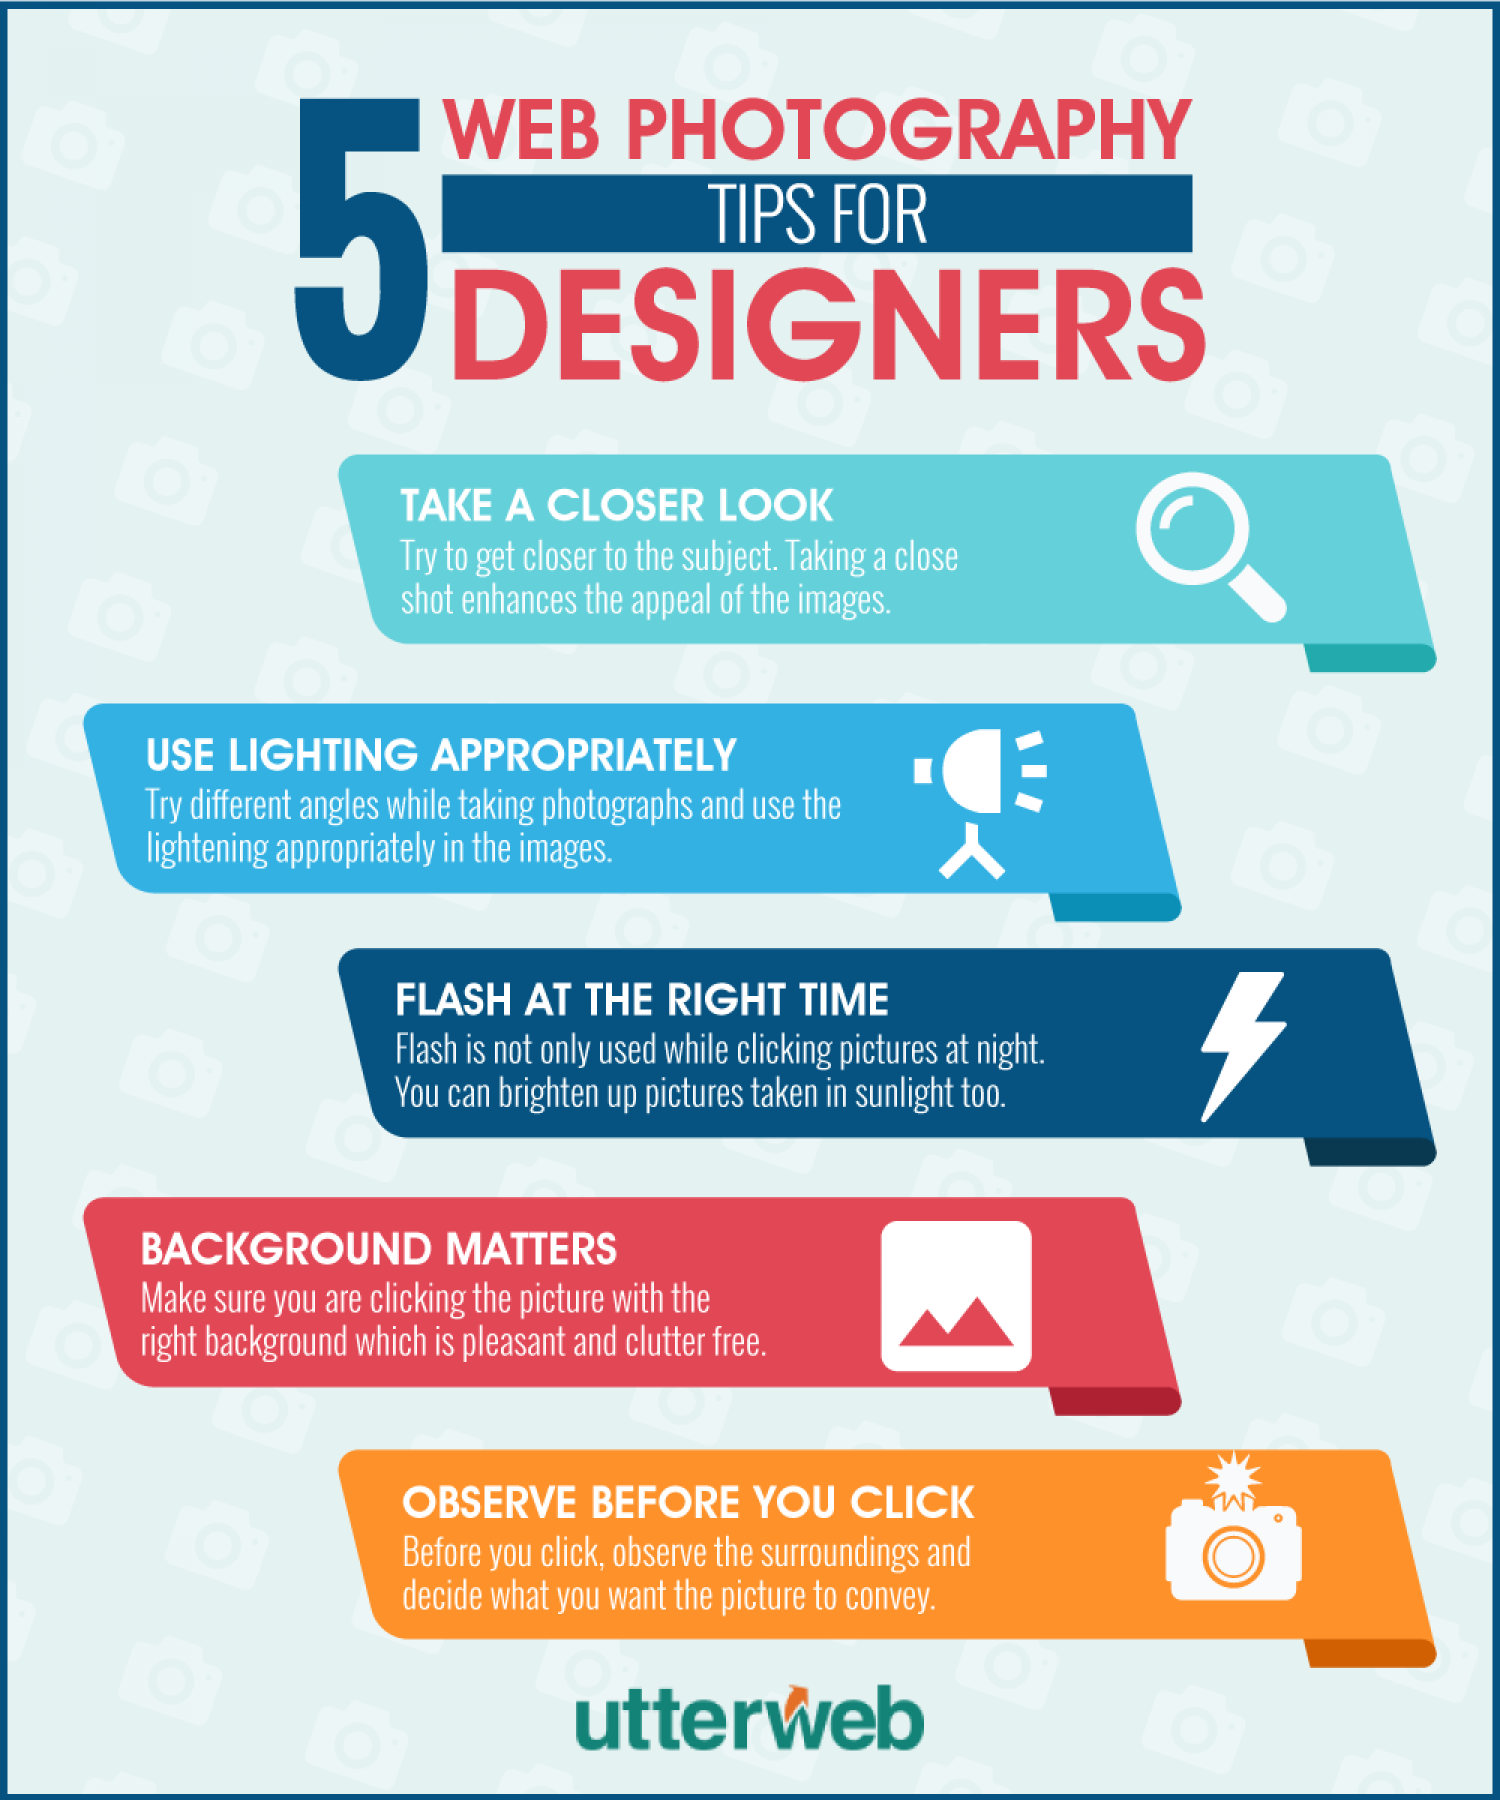 5 Web Photography Tips for Designers Infographic